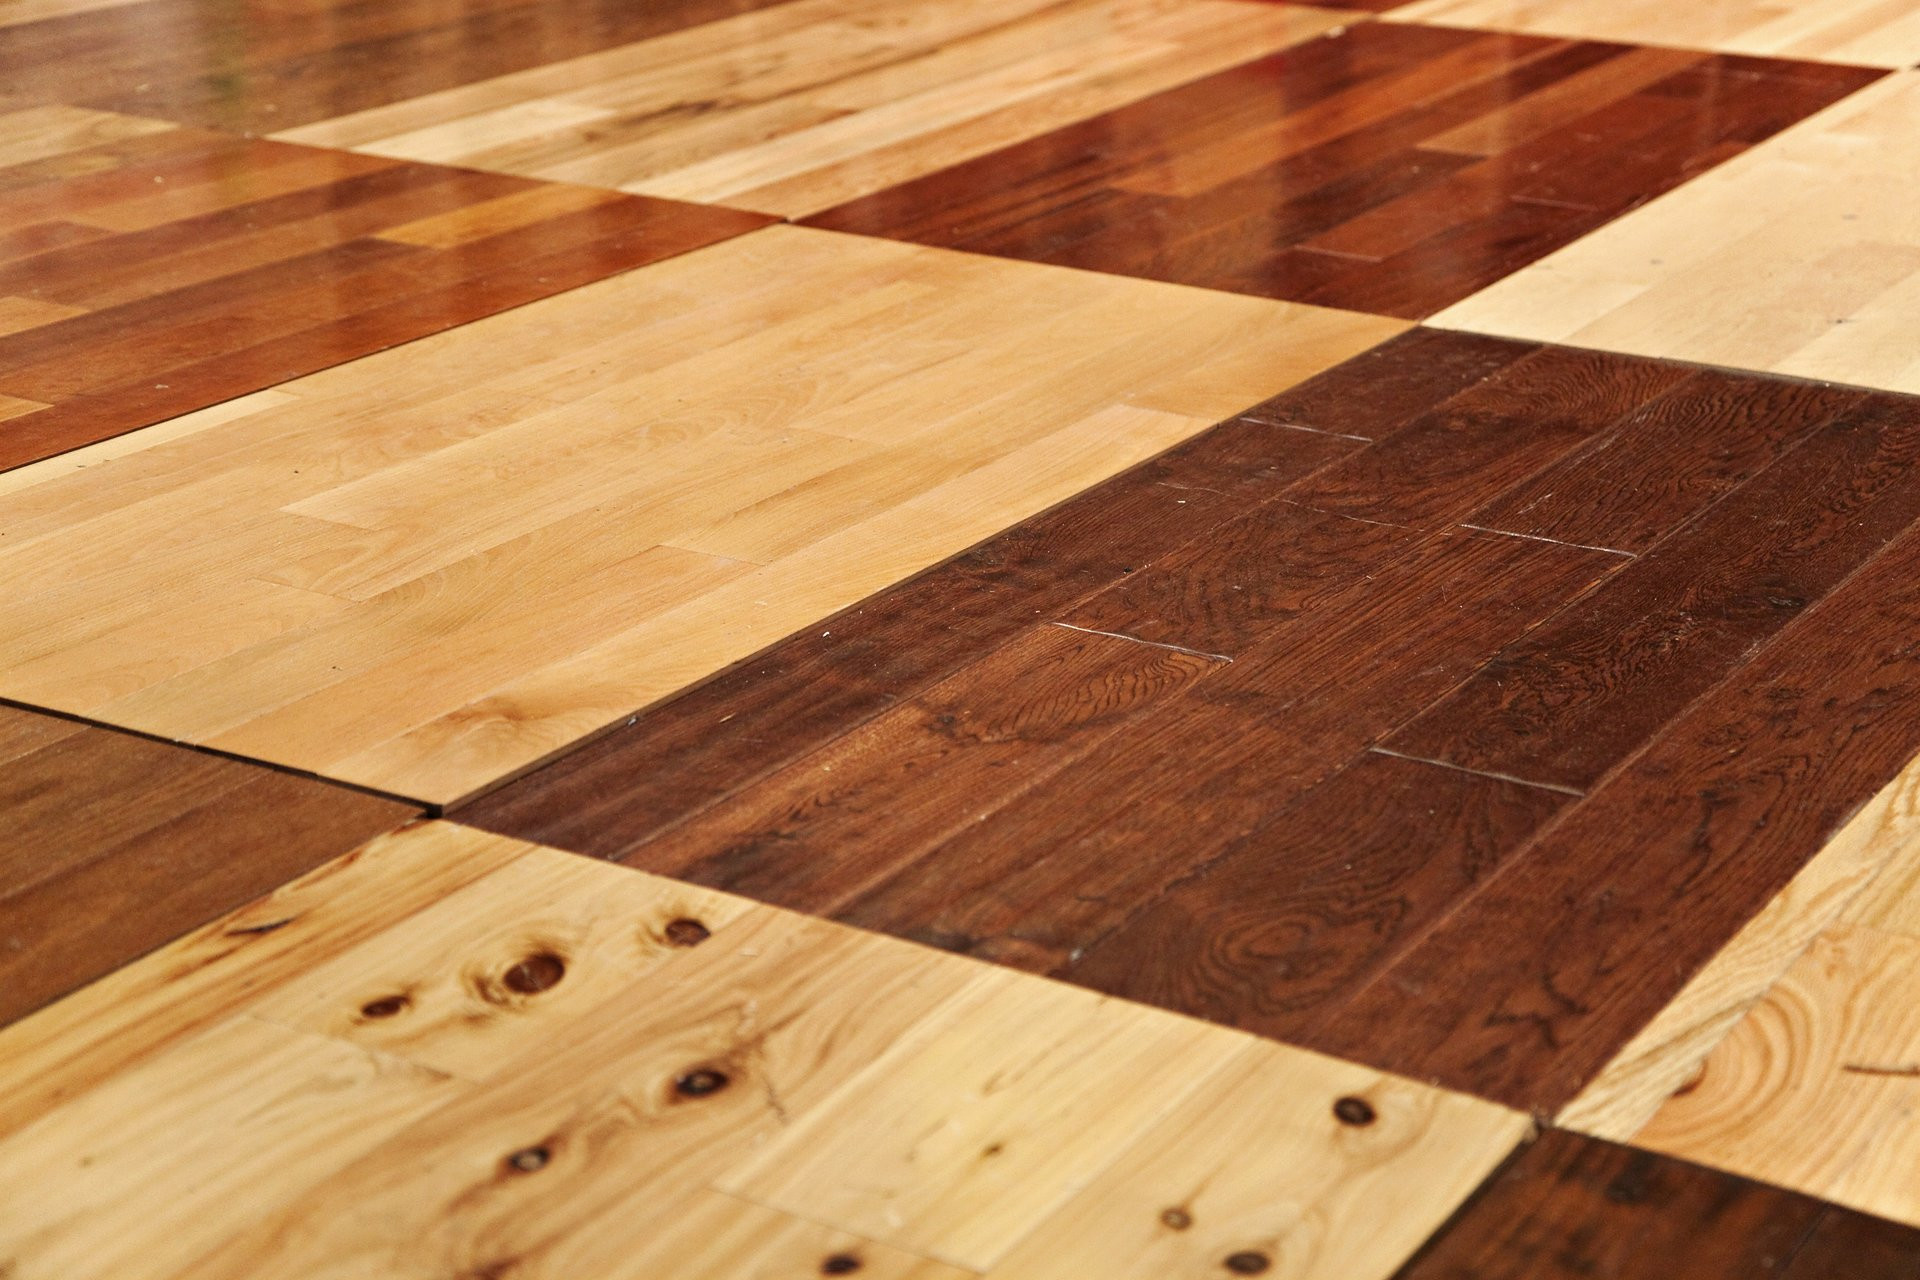 14 Stylish Hardwood Floor Installer Jobs 2021 free download hardwood floor installer jobs of american floor service hardwood flooring fairfield ct regarding jeff and his crew installed a beautiful new oak floor in my remodeled kitchen and restored a